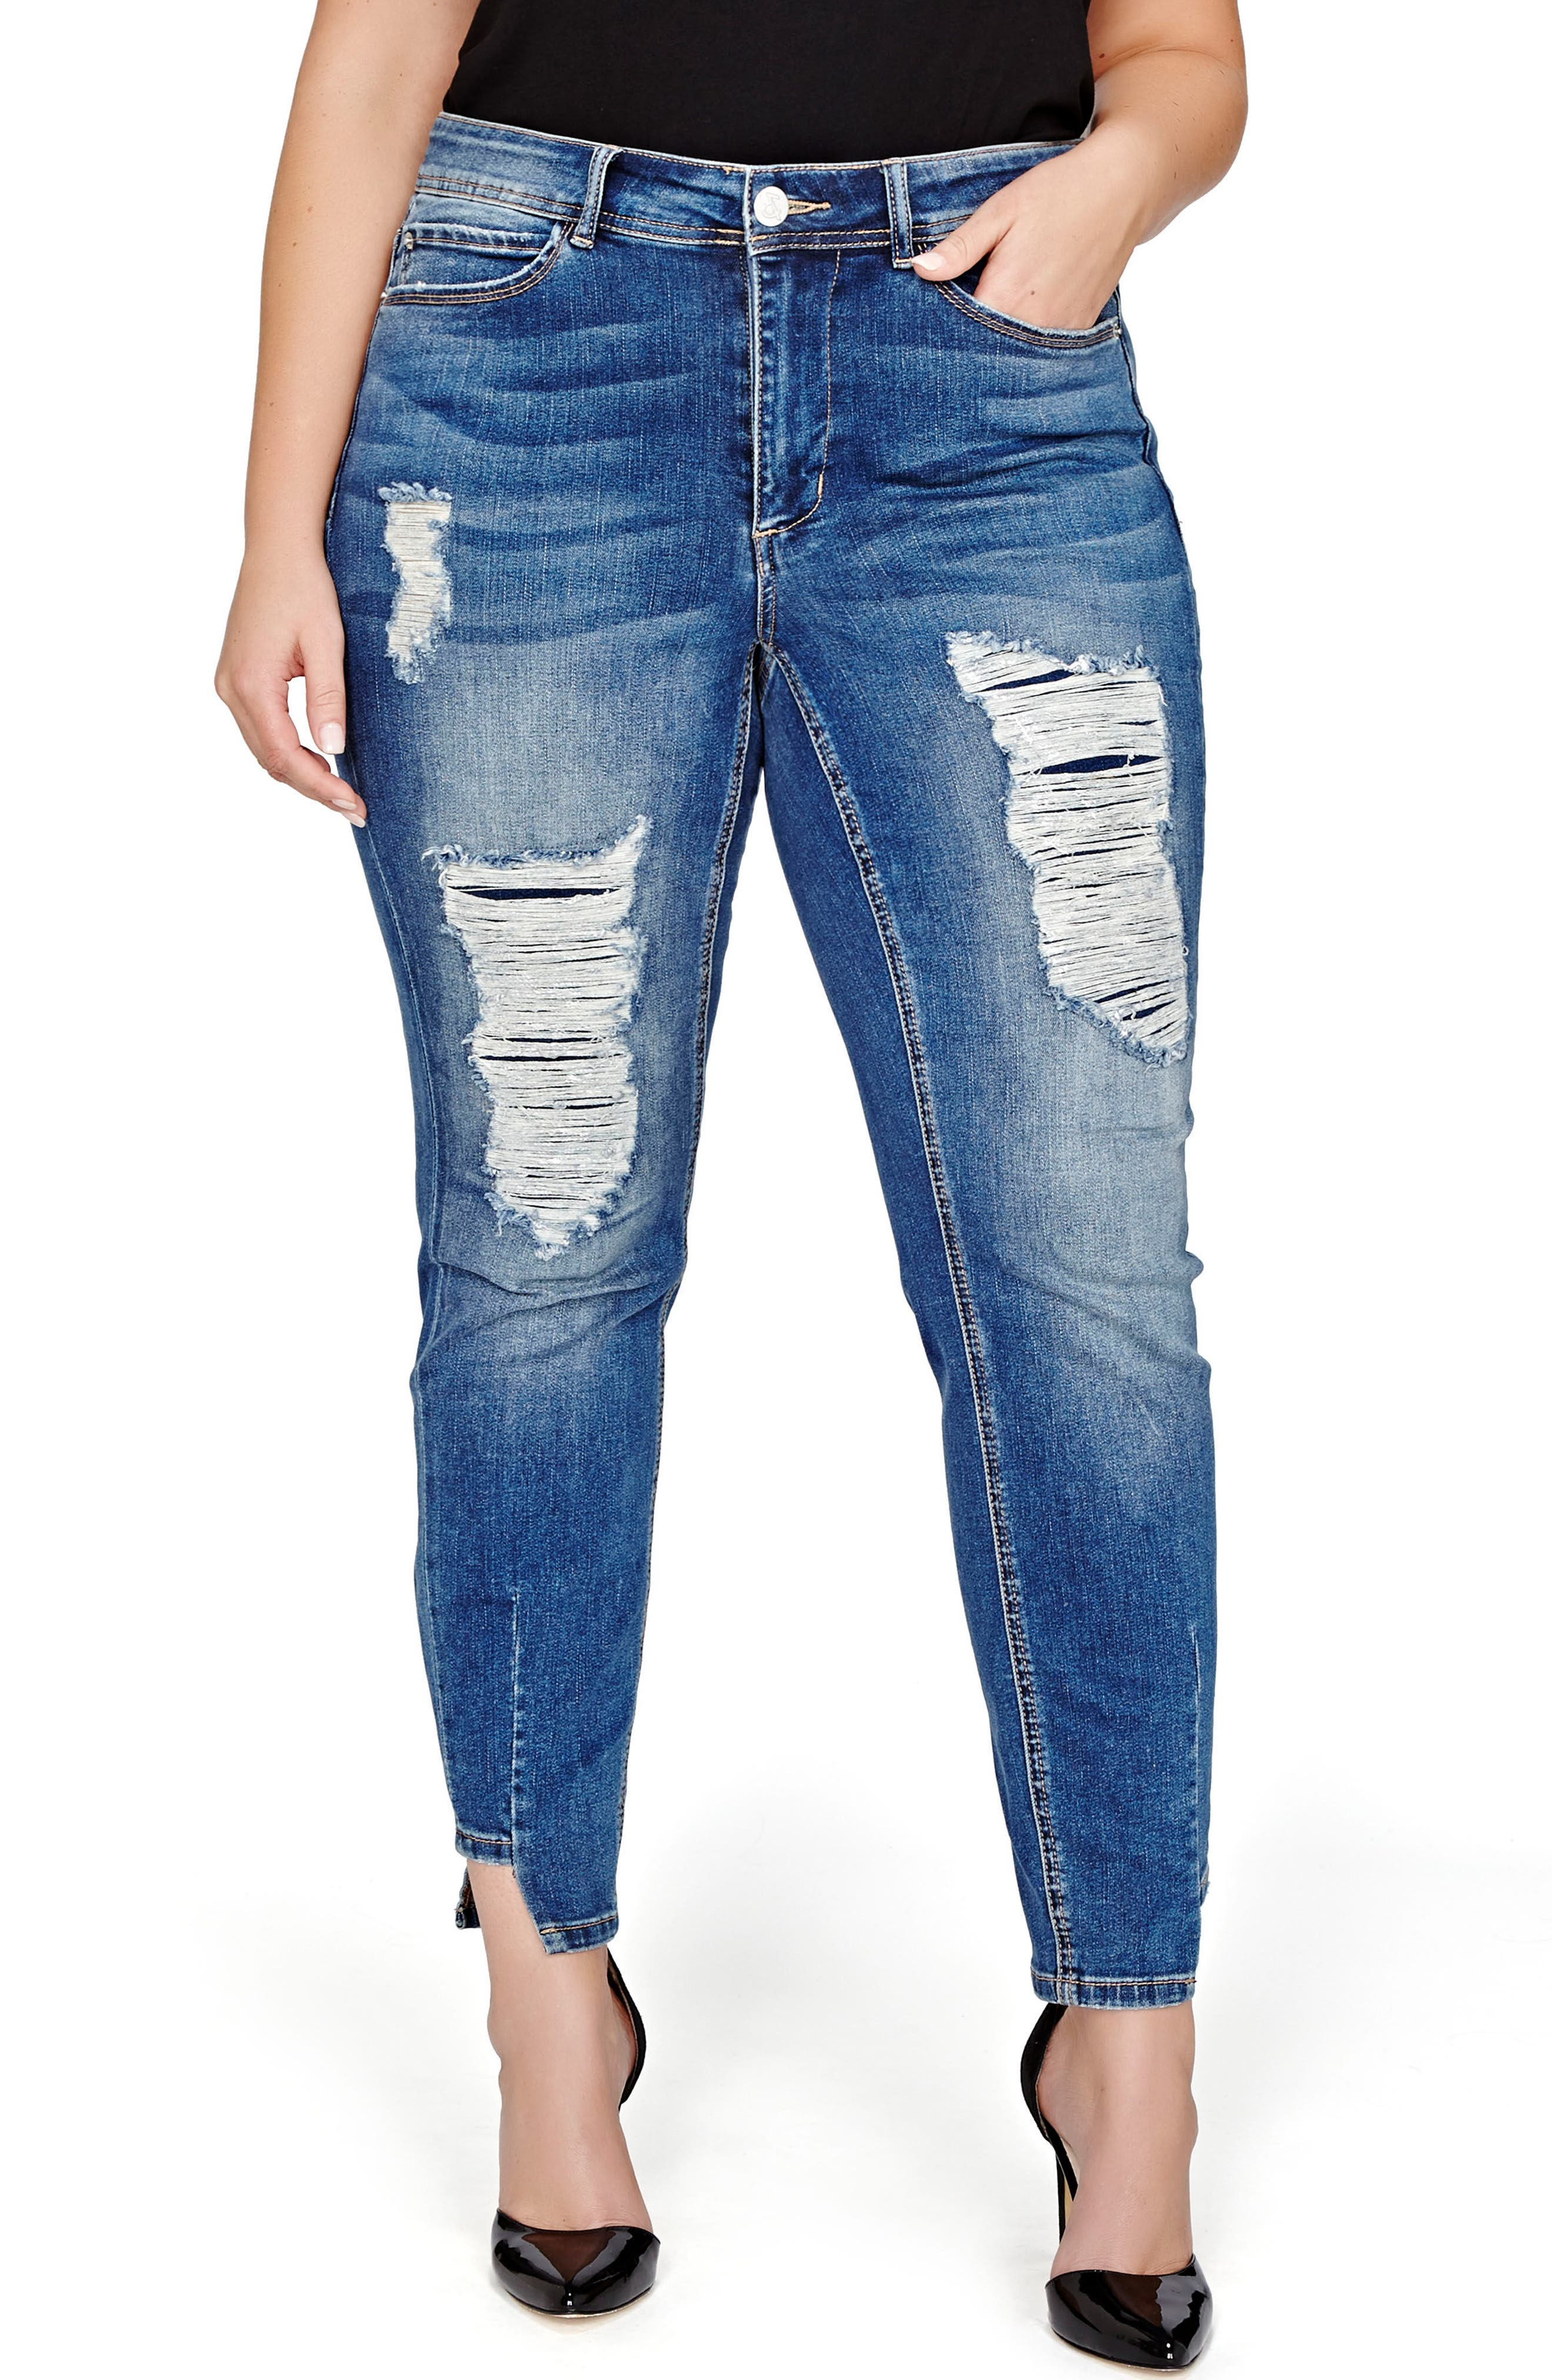 Main Image - ADDITION ELLE LOVE AND LEGEND Foil On Ripped Skinny Jeans (Plus Size)